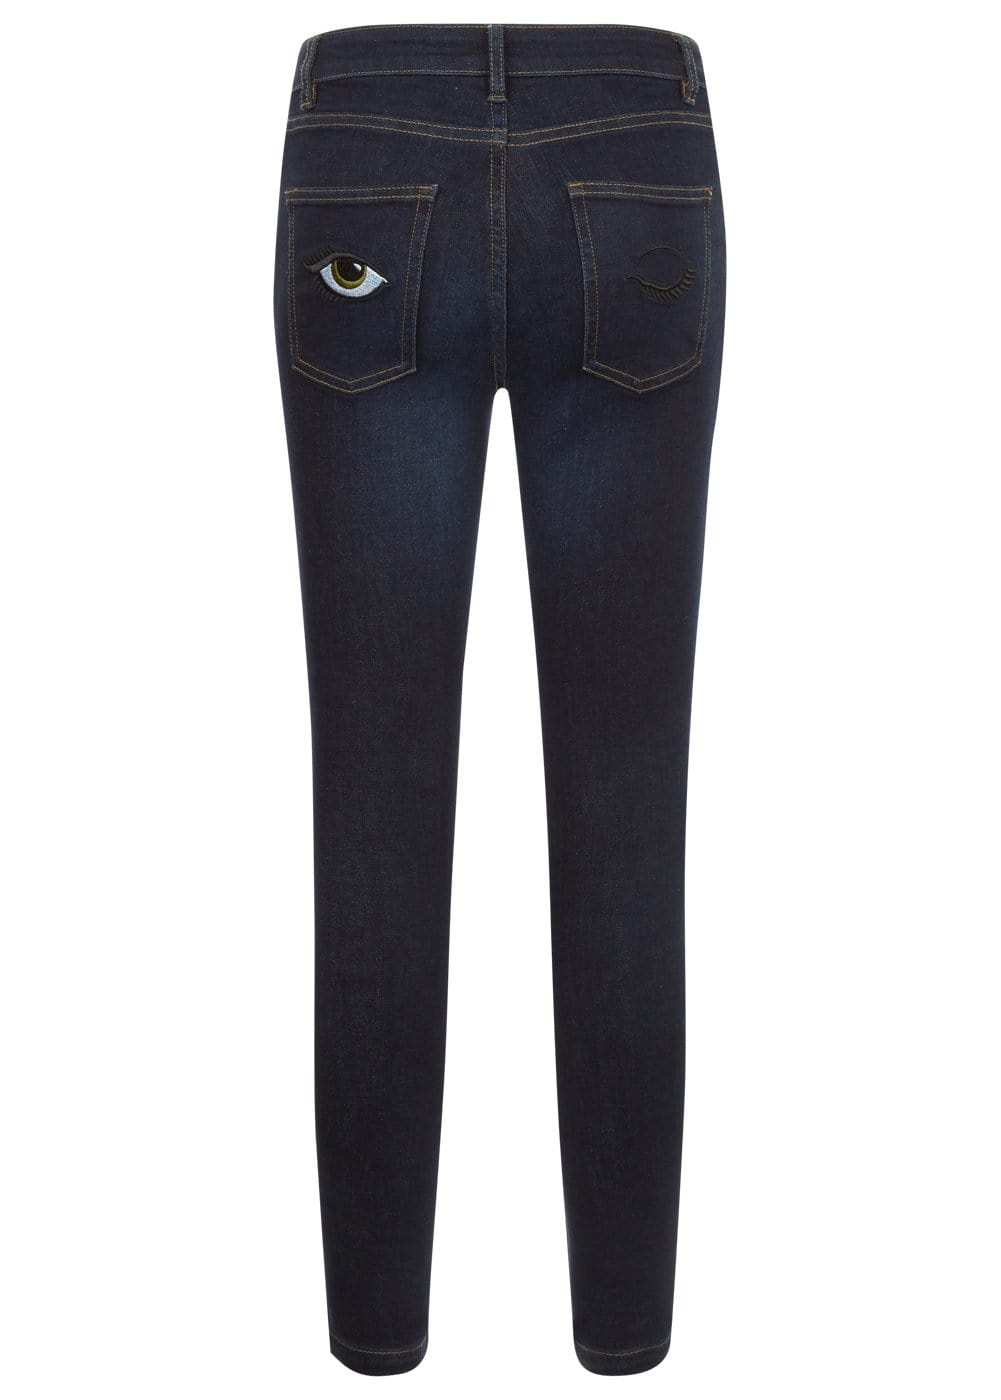 Youth Girls Dark Blue Skinny Jeans with Embroidered Eyes Pockets